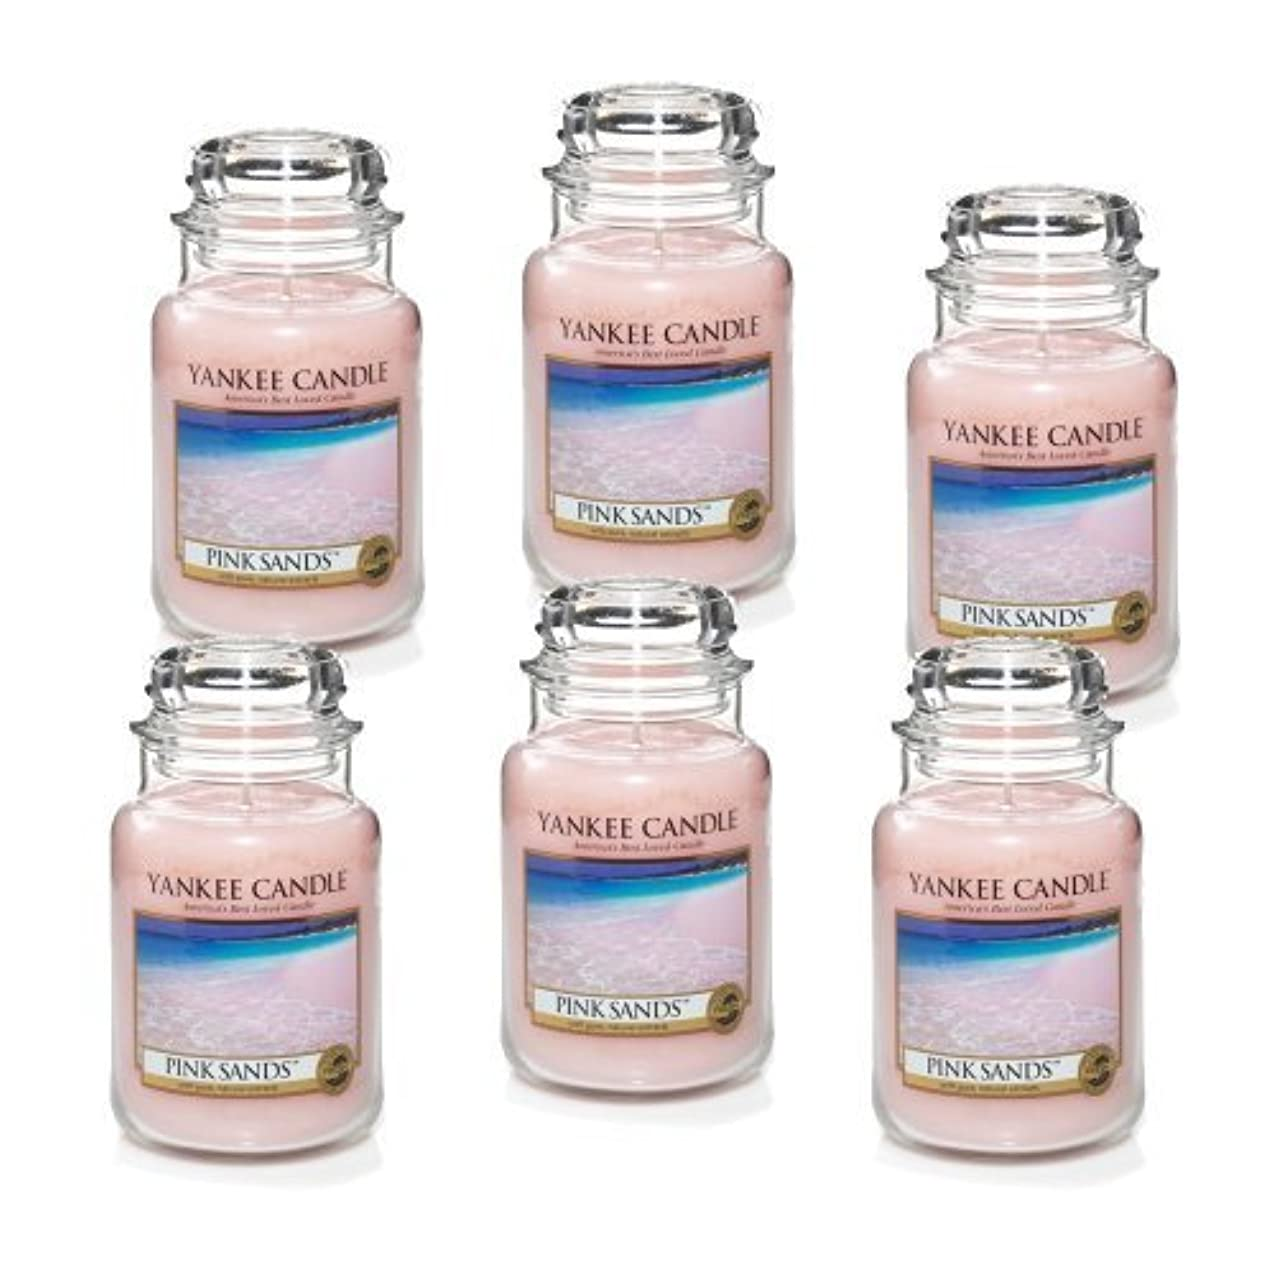 Yankee Candle Company 22-Ounce Pink Sands Jar Candle, Large, Set of 6 by Amazon source [並行輸入品]